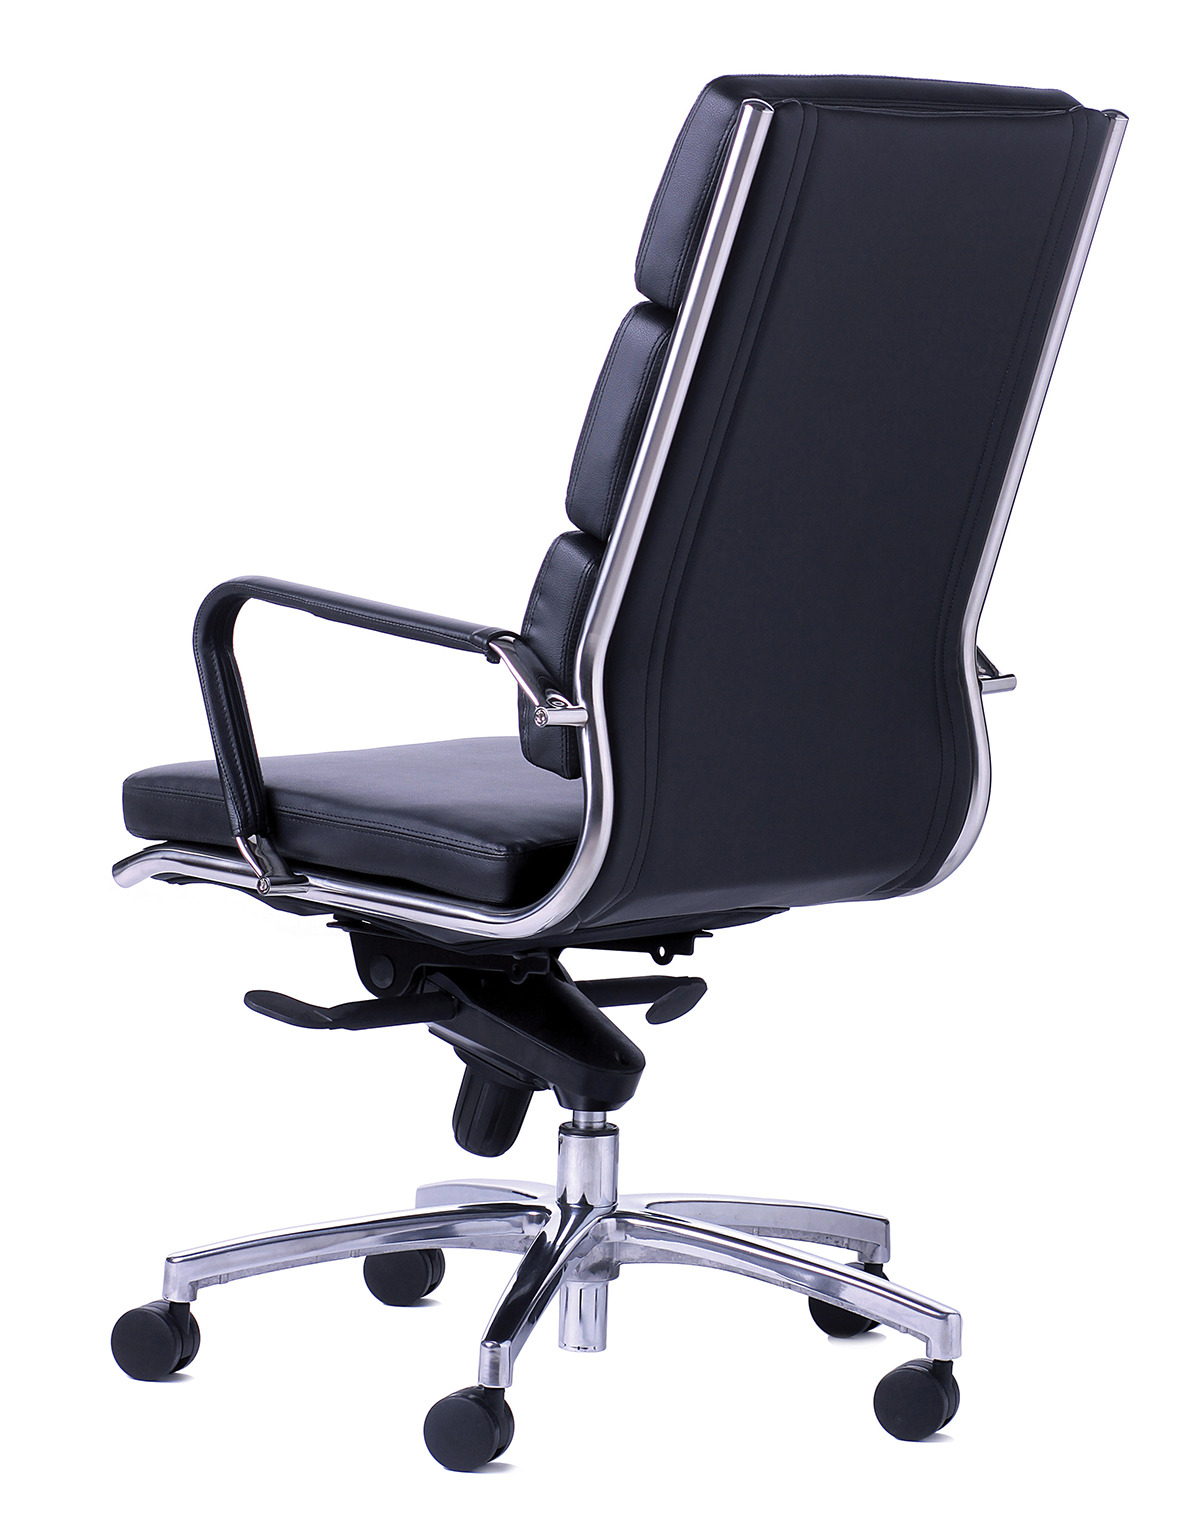 mode chair college desk high back executive boardroom office stock